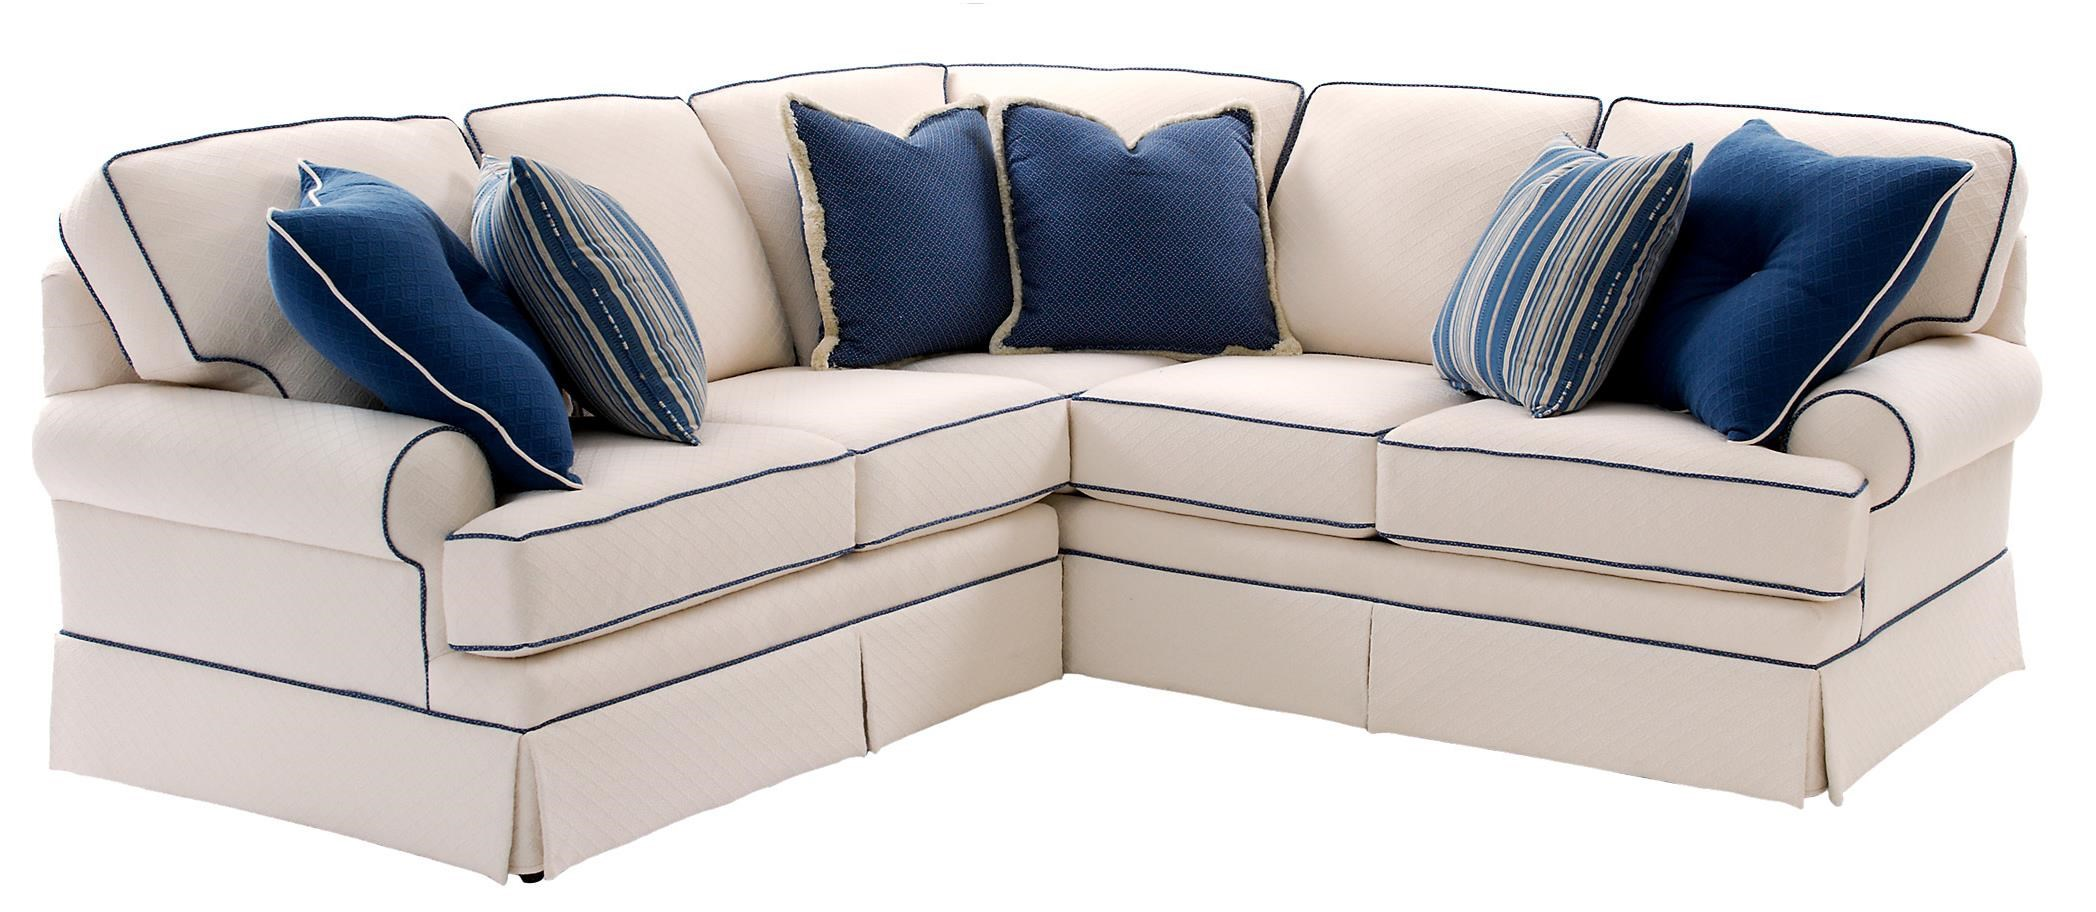 Smith Brothers Build Your Own (5000 Series) Sectional Sofa with Rolled Arms and Skirt - Saugerties Furniture Mart - Sectional Sofas  sc 1 st  Saugerties Furniture Mart : create your own sectional sofa - Sectionals, Sofas & Couches